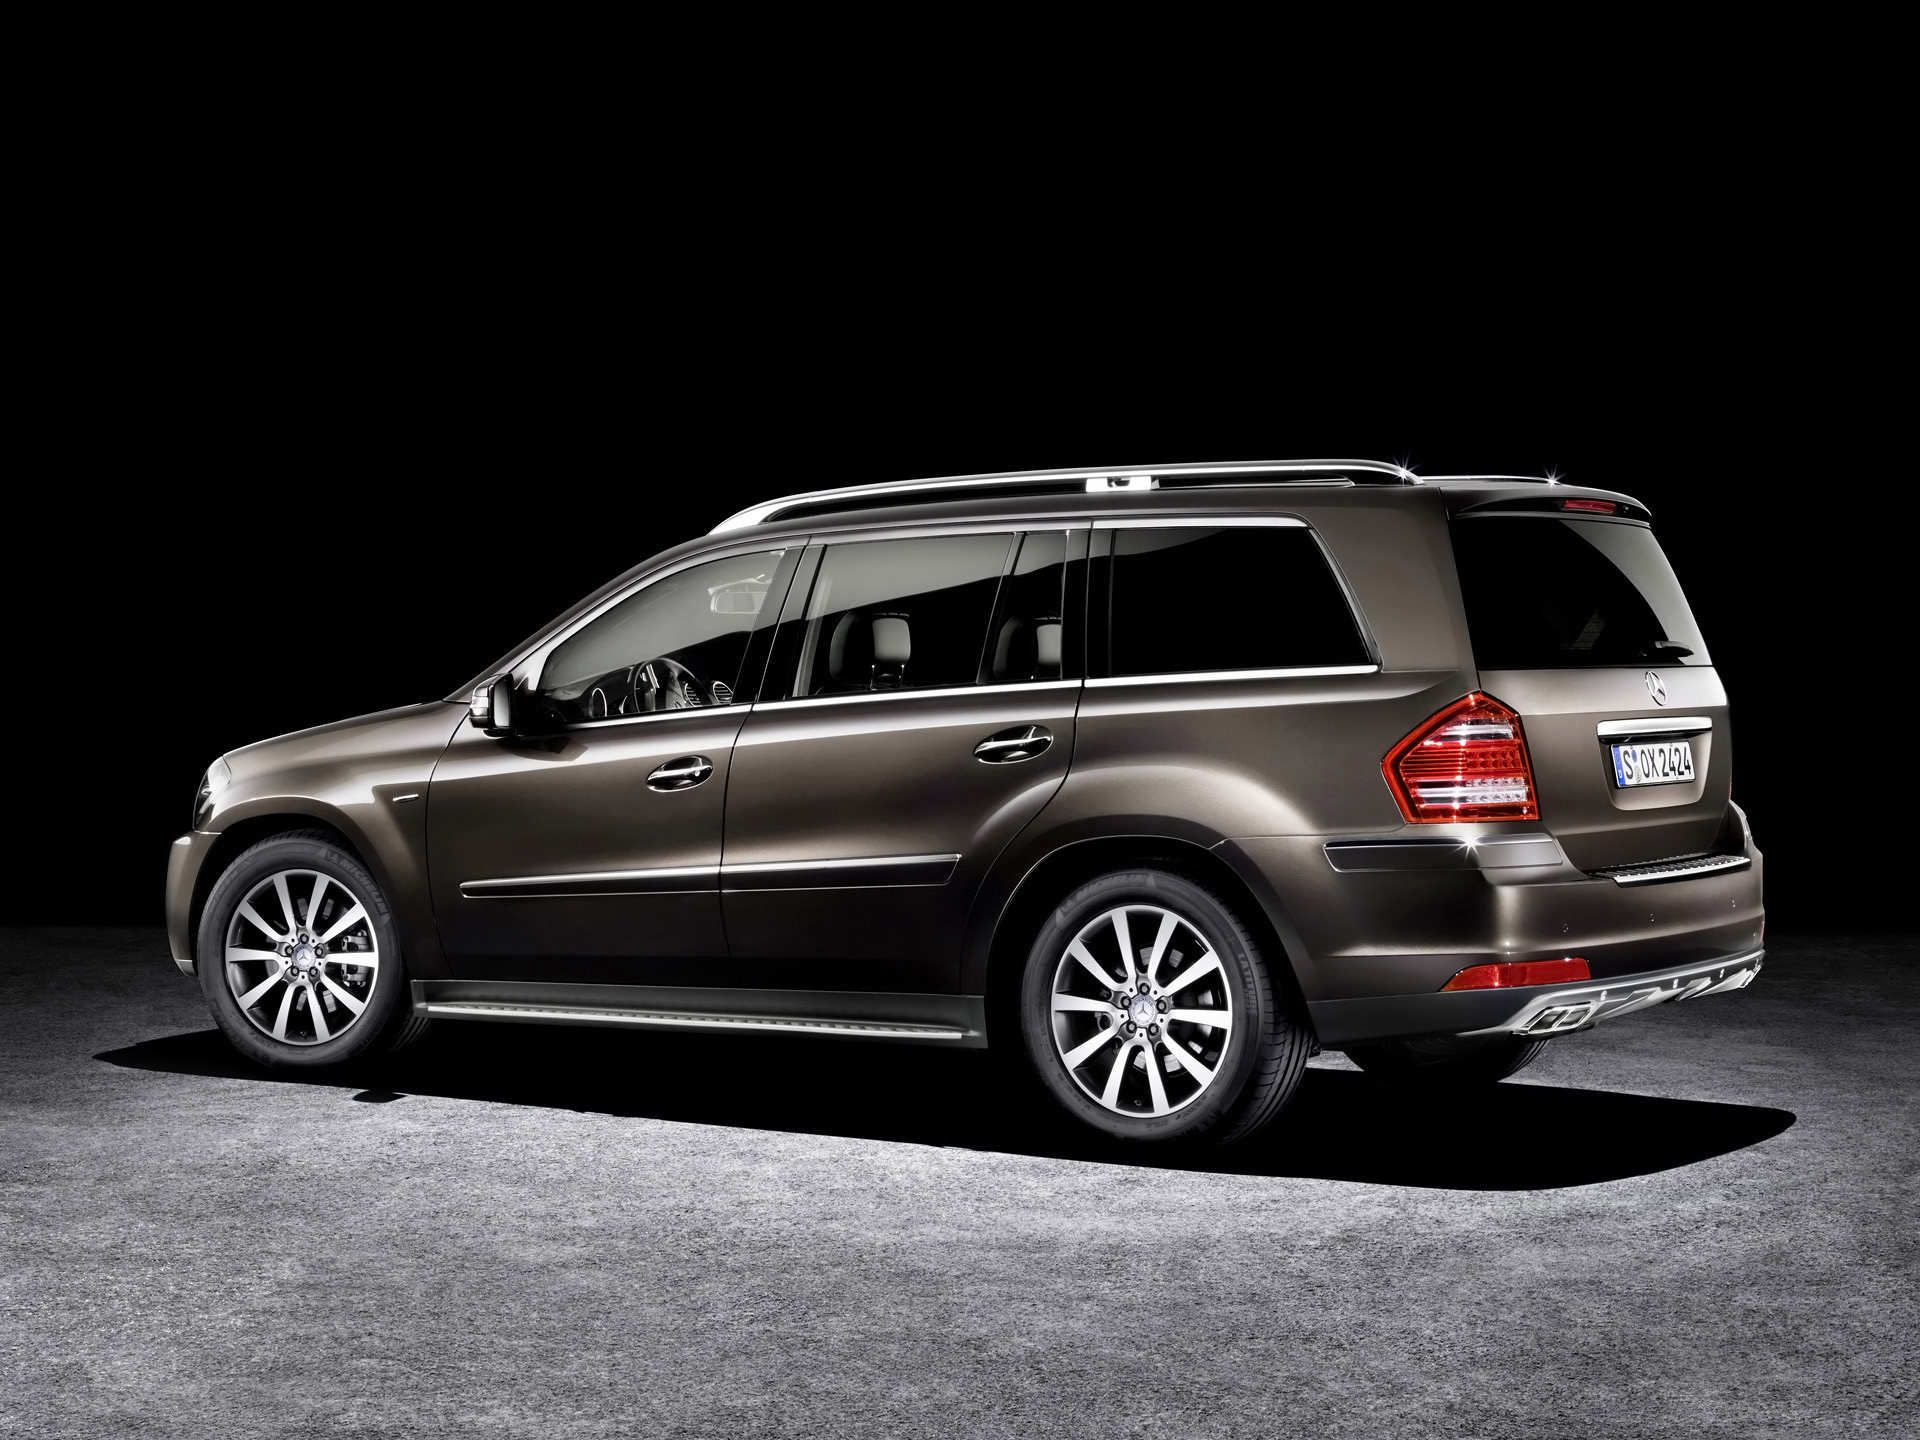 Mercedes Benz Gl This Is Not Only A Very Handsome Suv But It Is